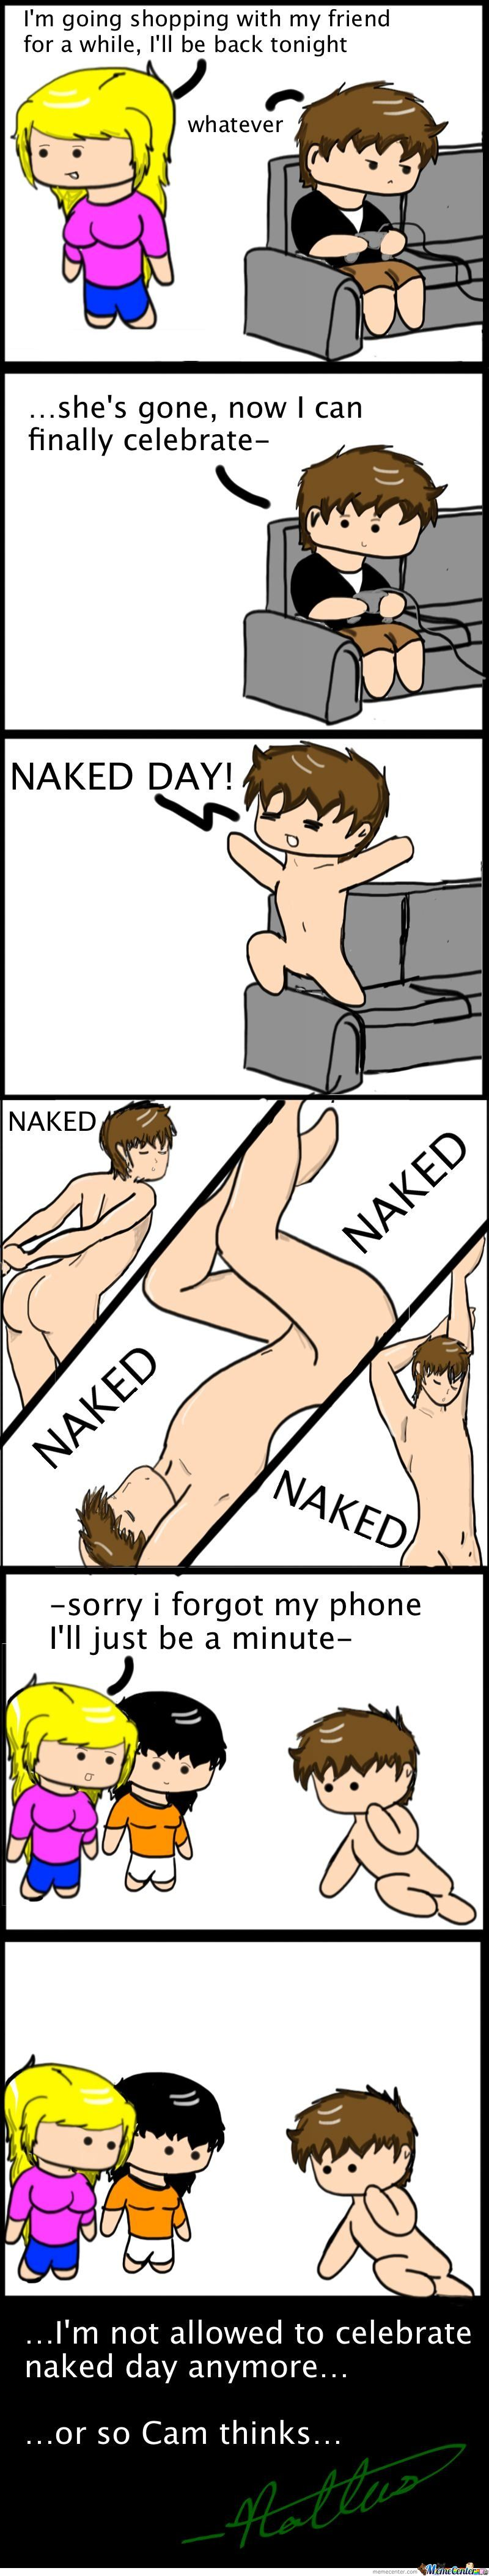 Happy Naked Day